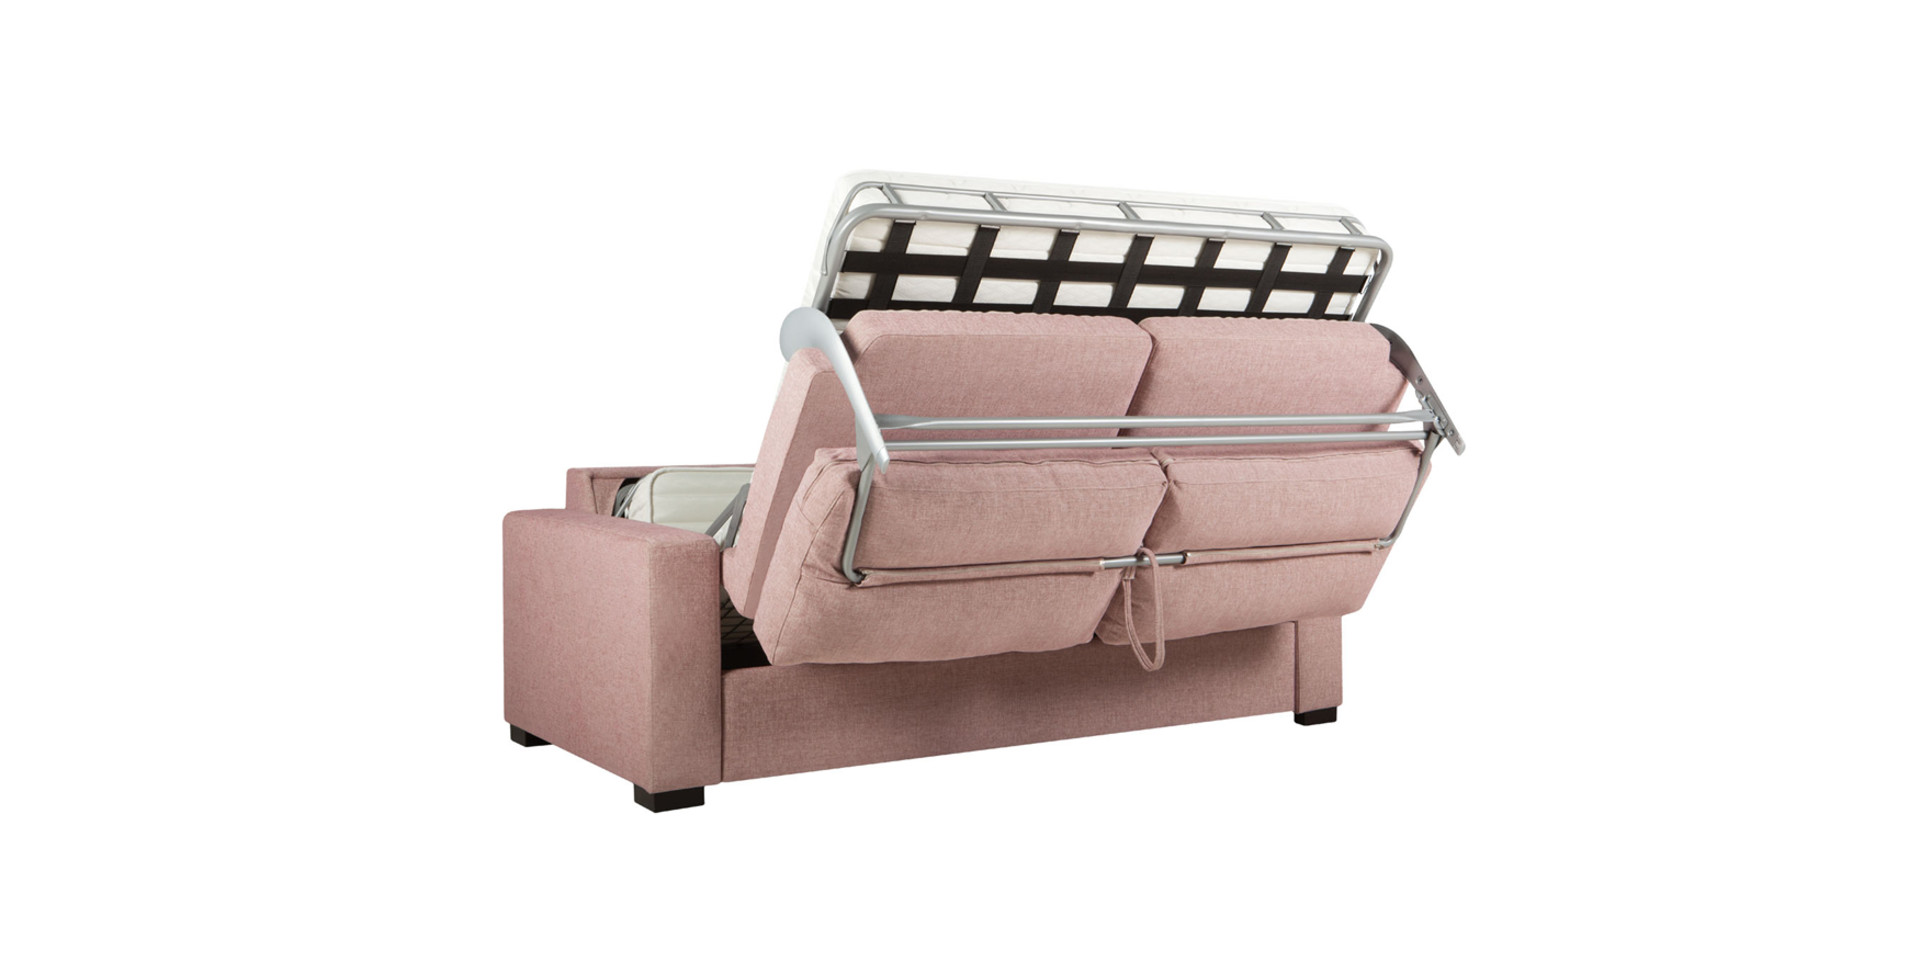 sits-lukas-canape-convertible-sofa_bed3_divine61_pink_8_0